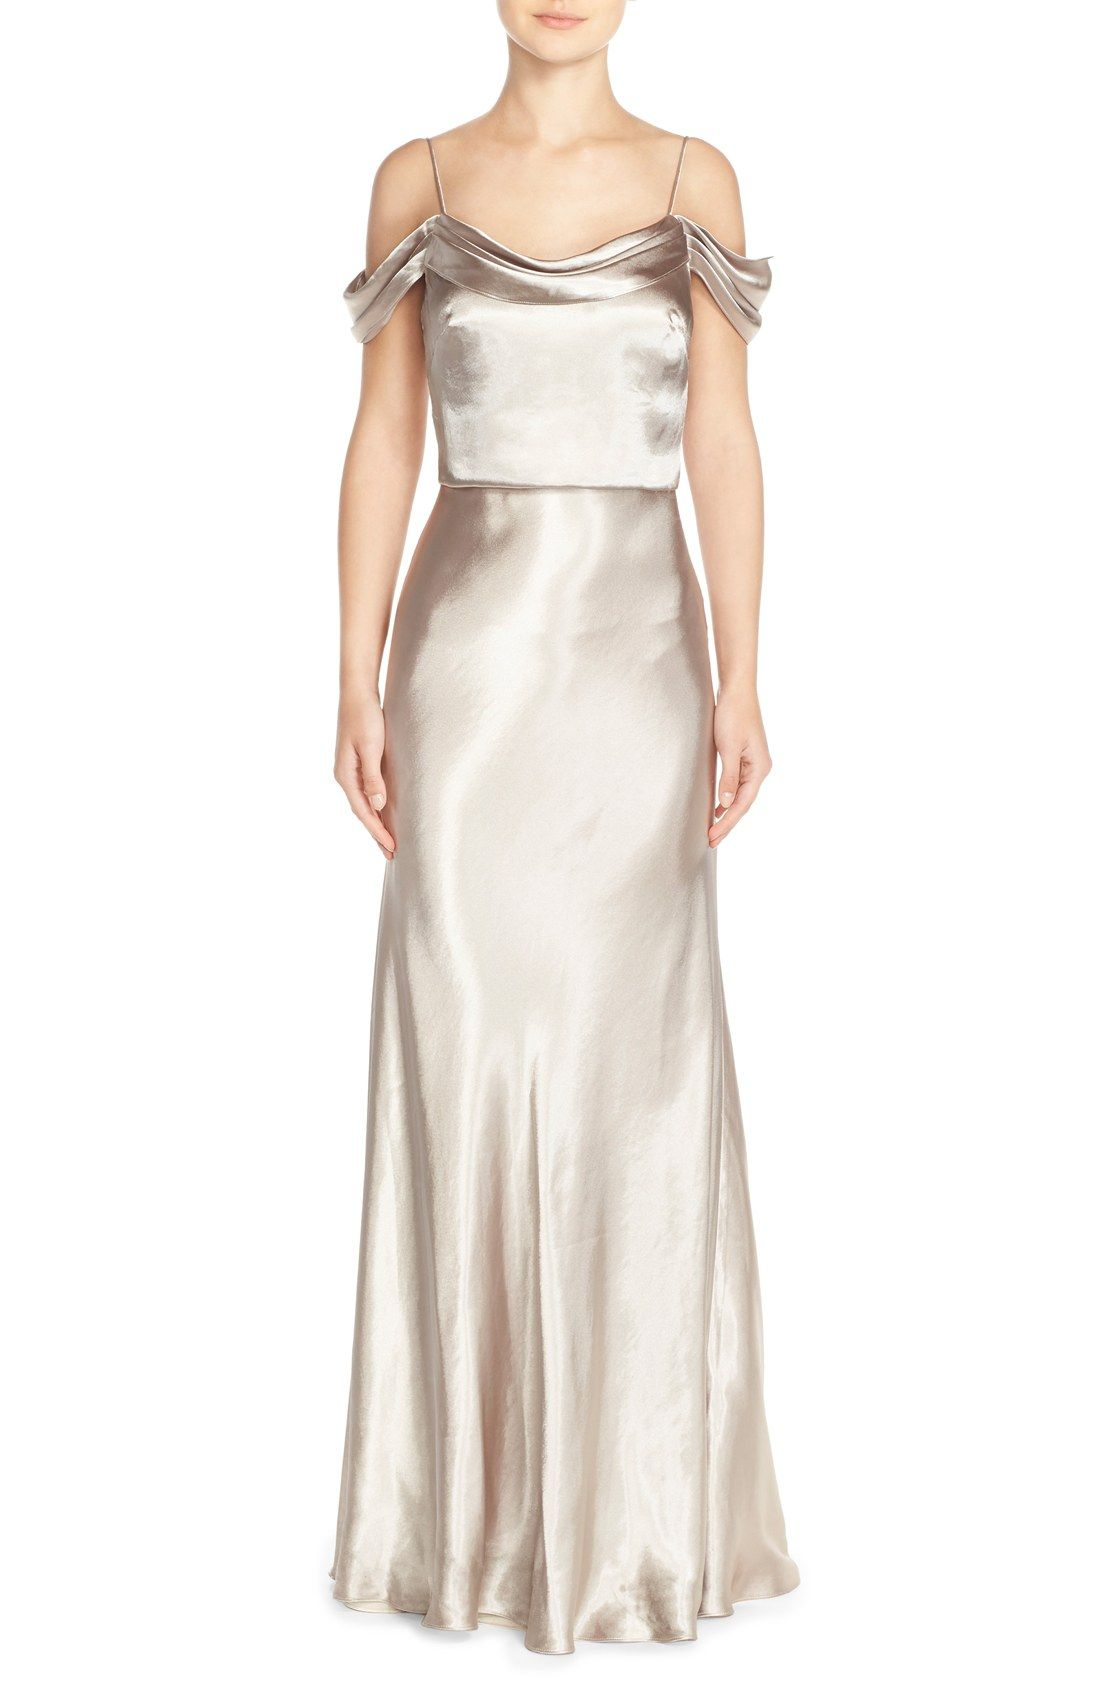 Jenny yoo sabine draped pleat neck charmeuse gown best day shop for jenny yoo sabine draped pleat neck charmeuse gown find the best jenny yoo sabine draped pleat neck charmeuse gown selection online across all ombrellifo Images